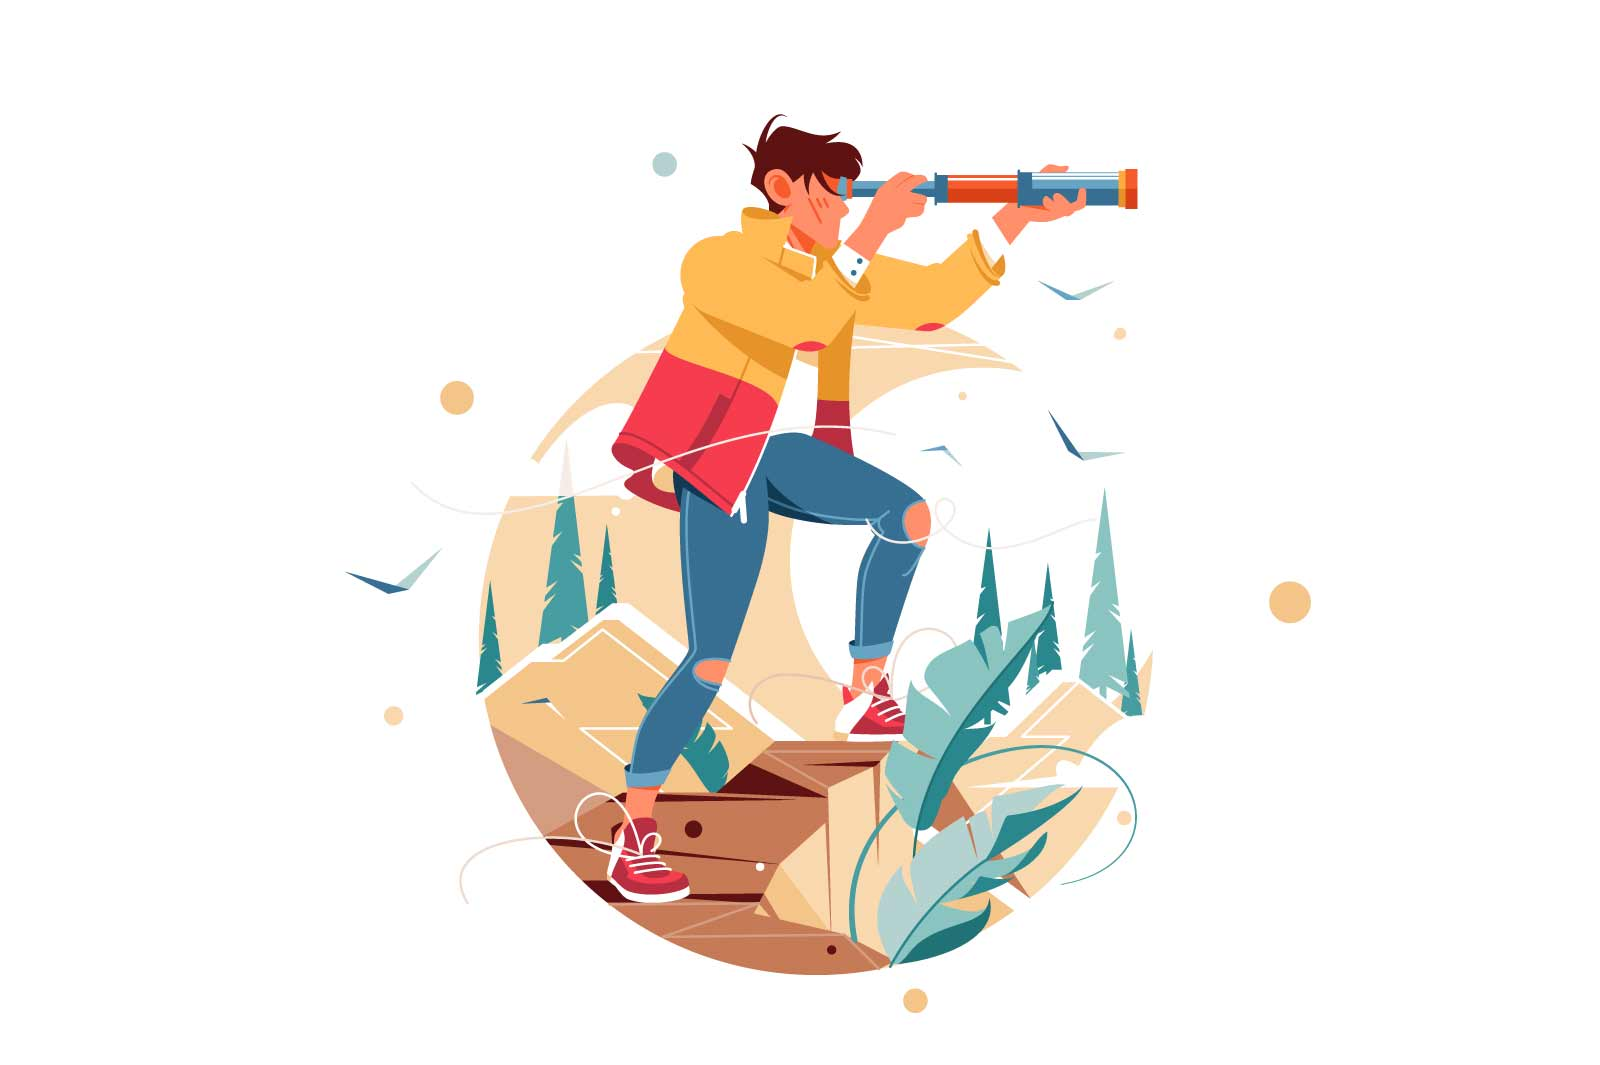 Young confident male traveler watching from height using spyglass. Isolated icon concept of handsome man character in mountain journey studying area. Vector illustration.